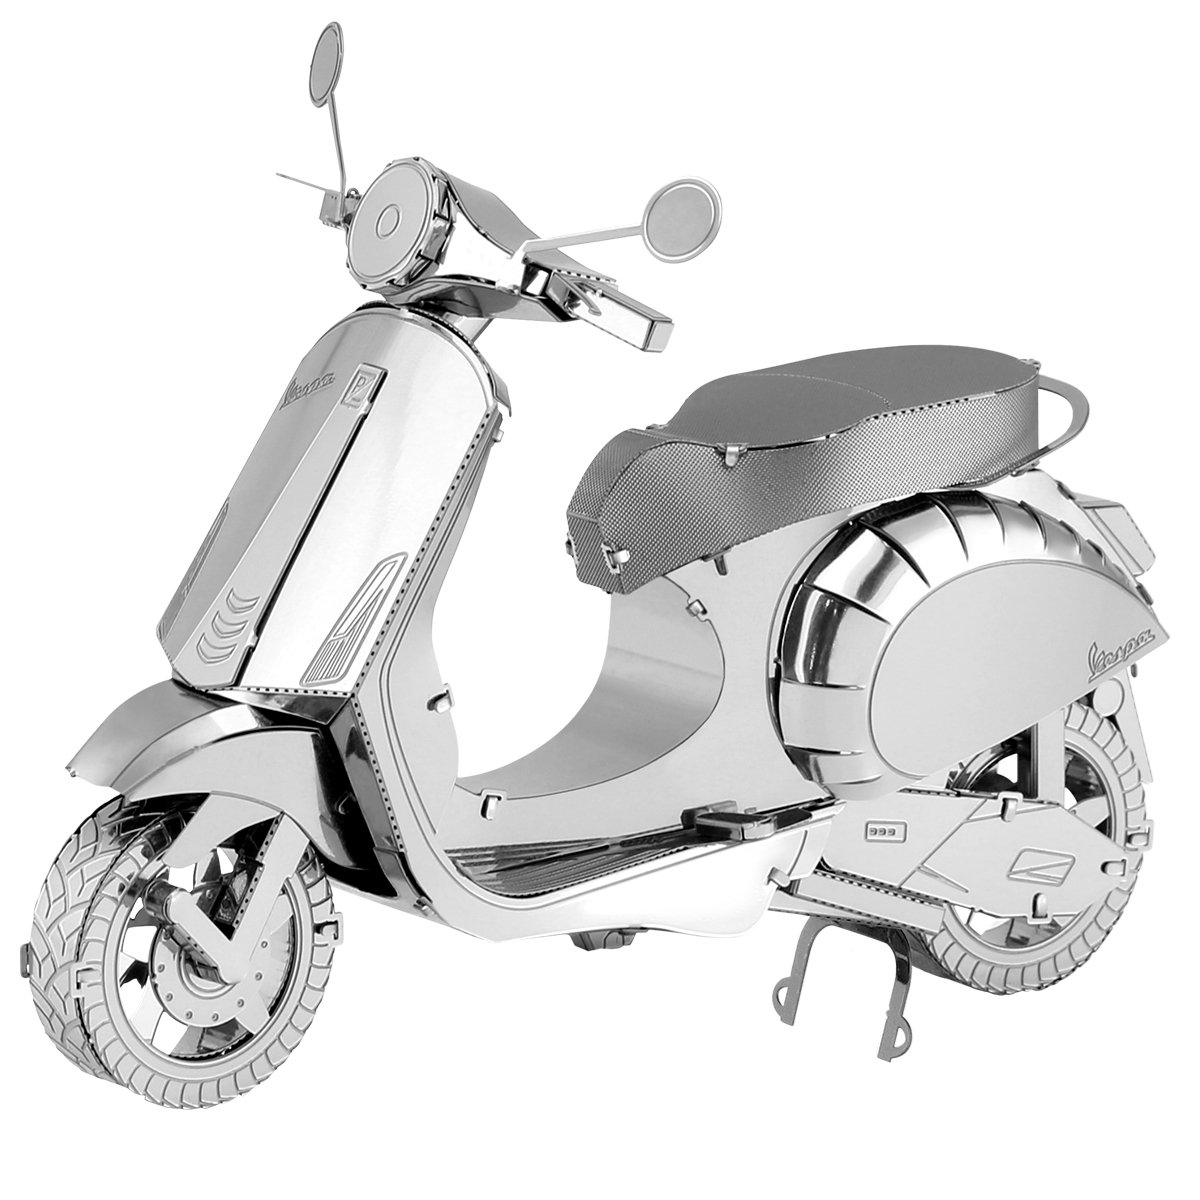 Fascinations Metal Earth Vespa Primavera 150 3D Metal Model Kit